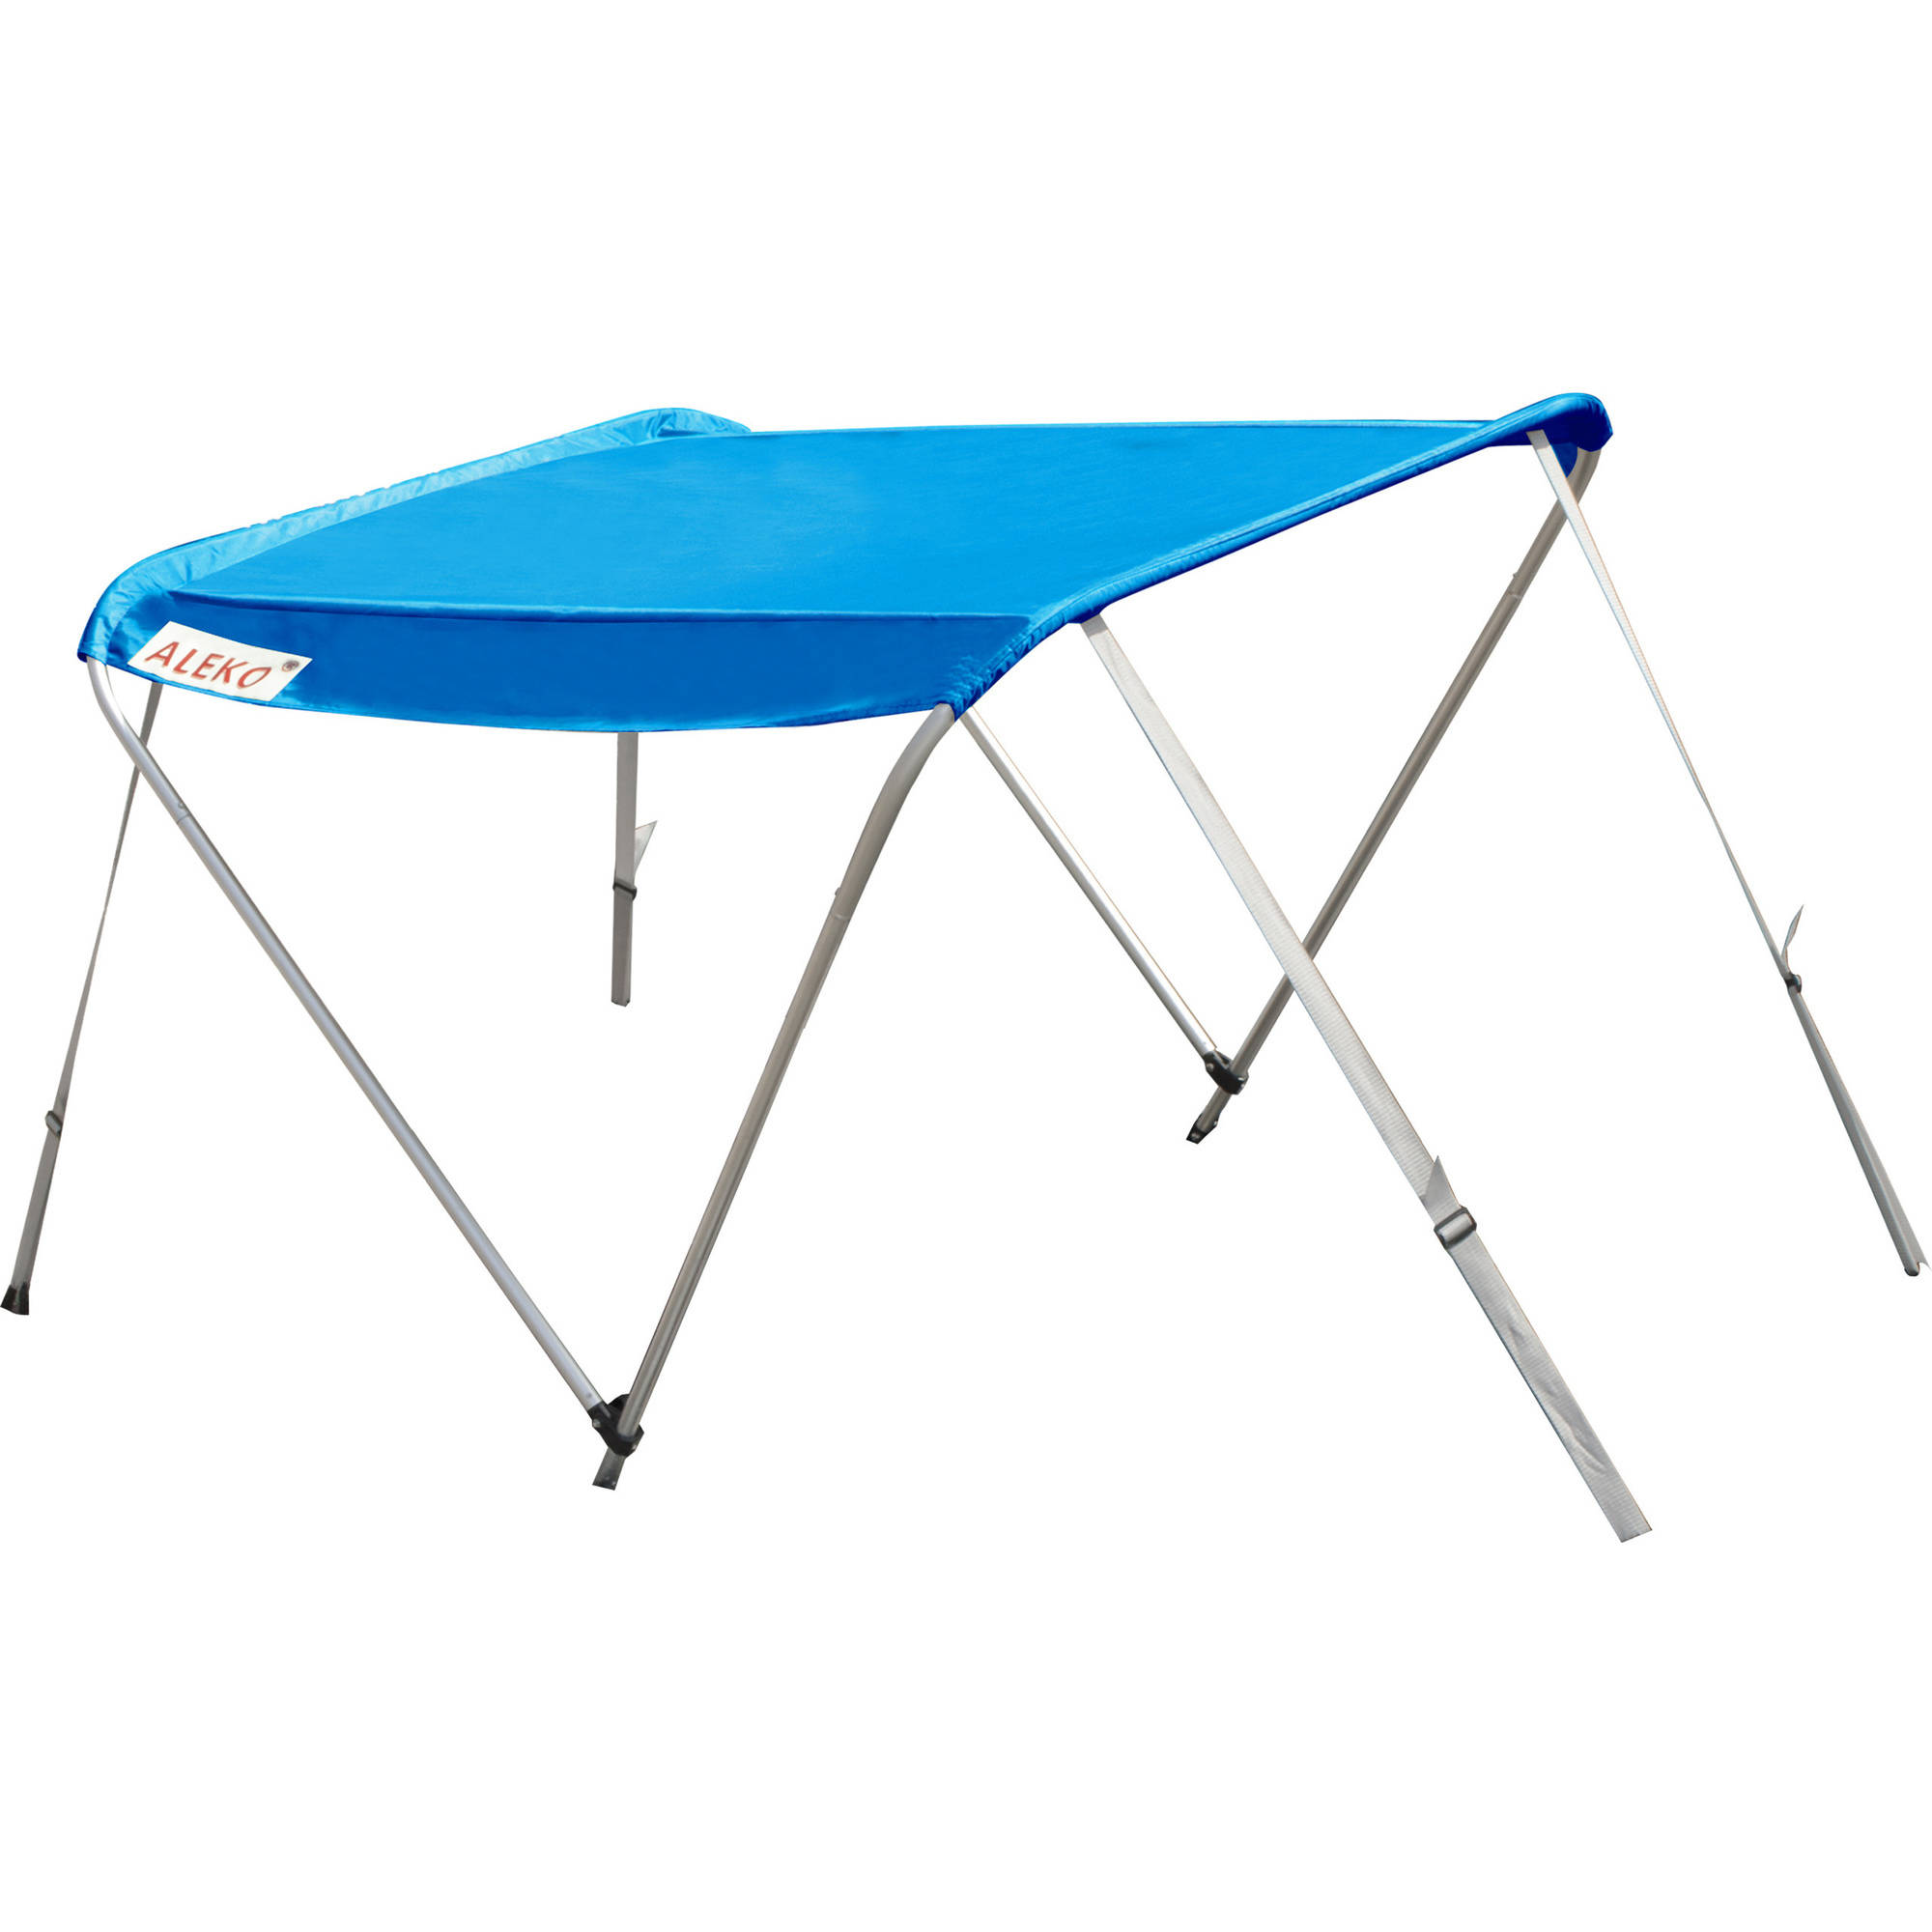 ALEKO BSTENT250B Summer Canopy Boat Tent Sun Shelter Sunshade for Inflatable